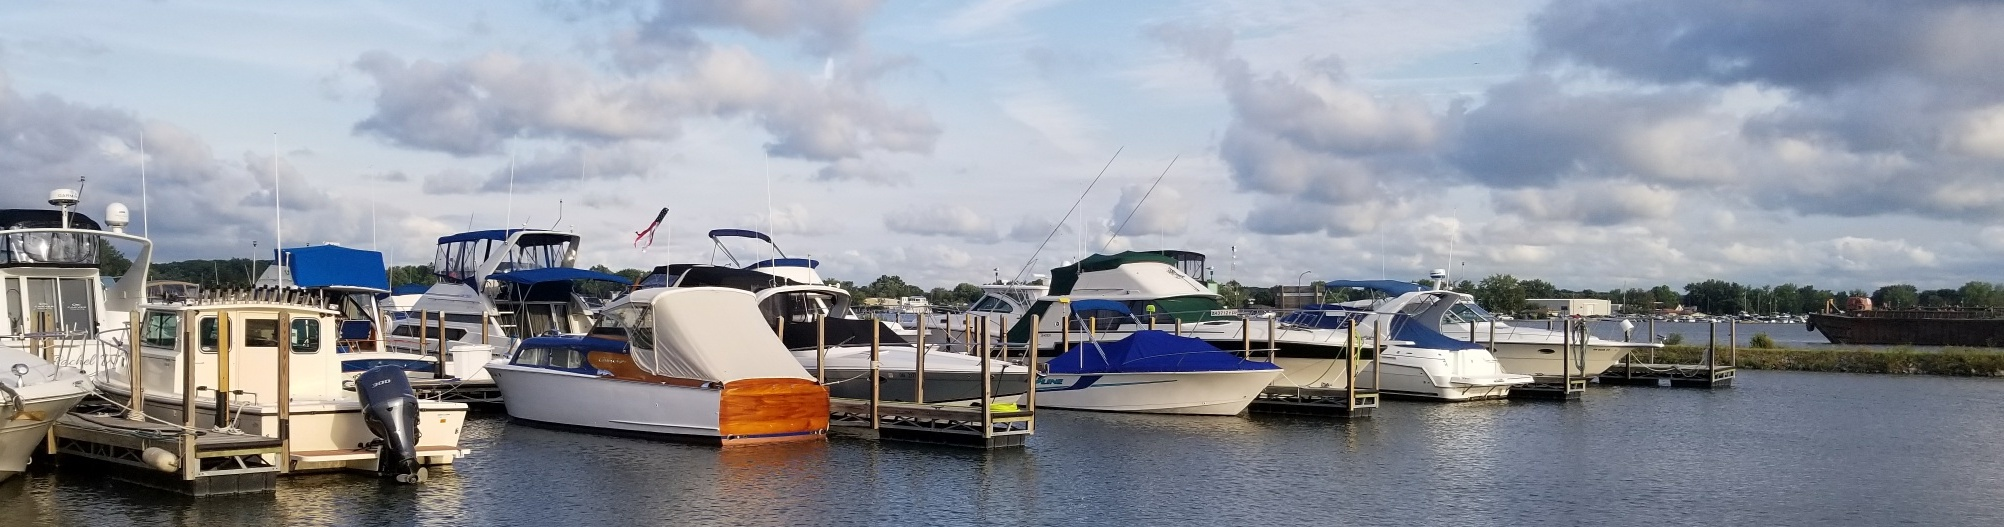 Boats at East Harbor State Park Marina | Snag-A-Slip